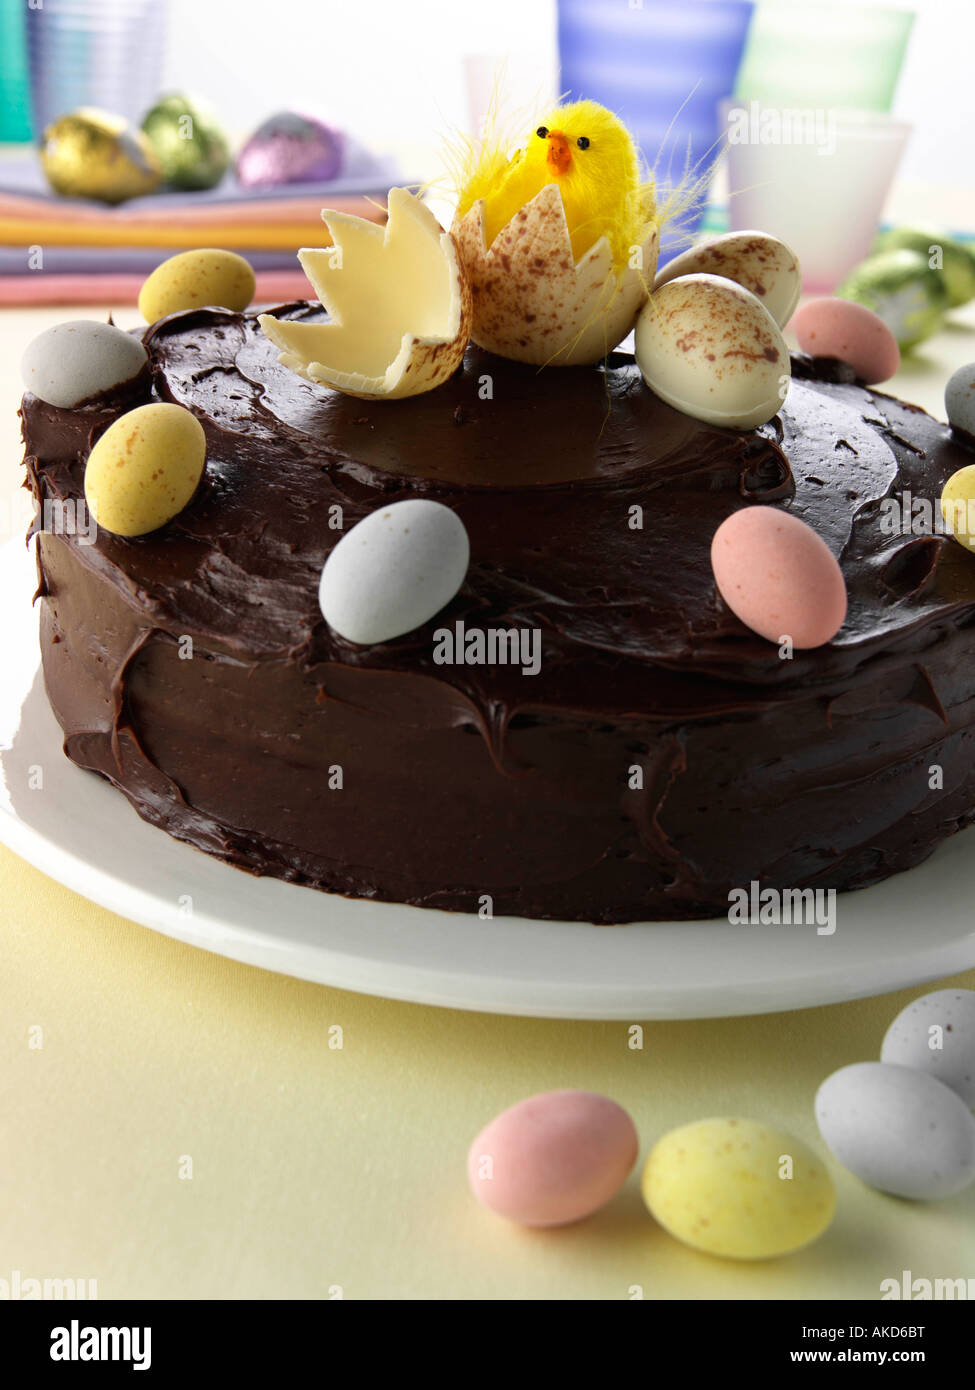 A whole home made chocolate Easter cake kids parties editorial food Stock Photo